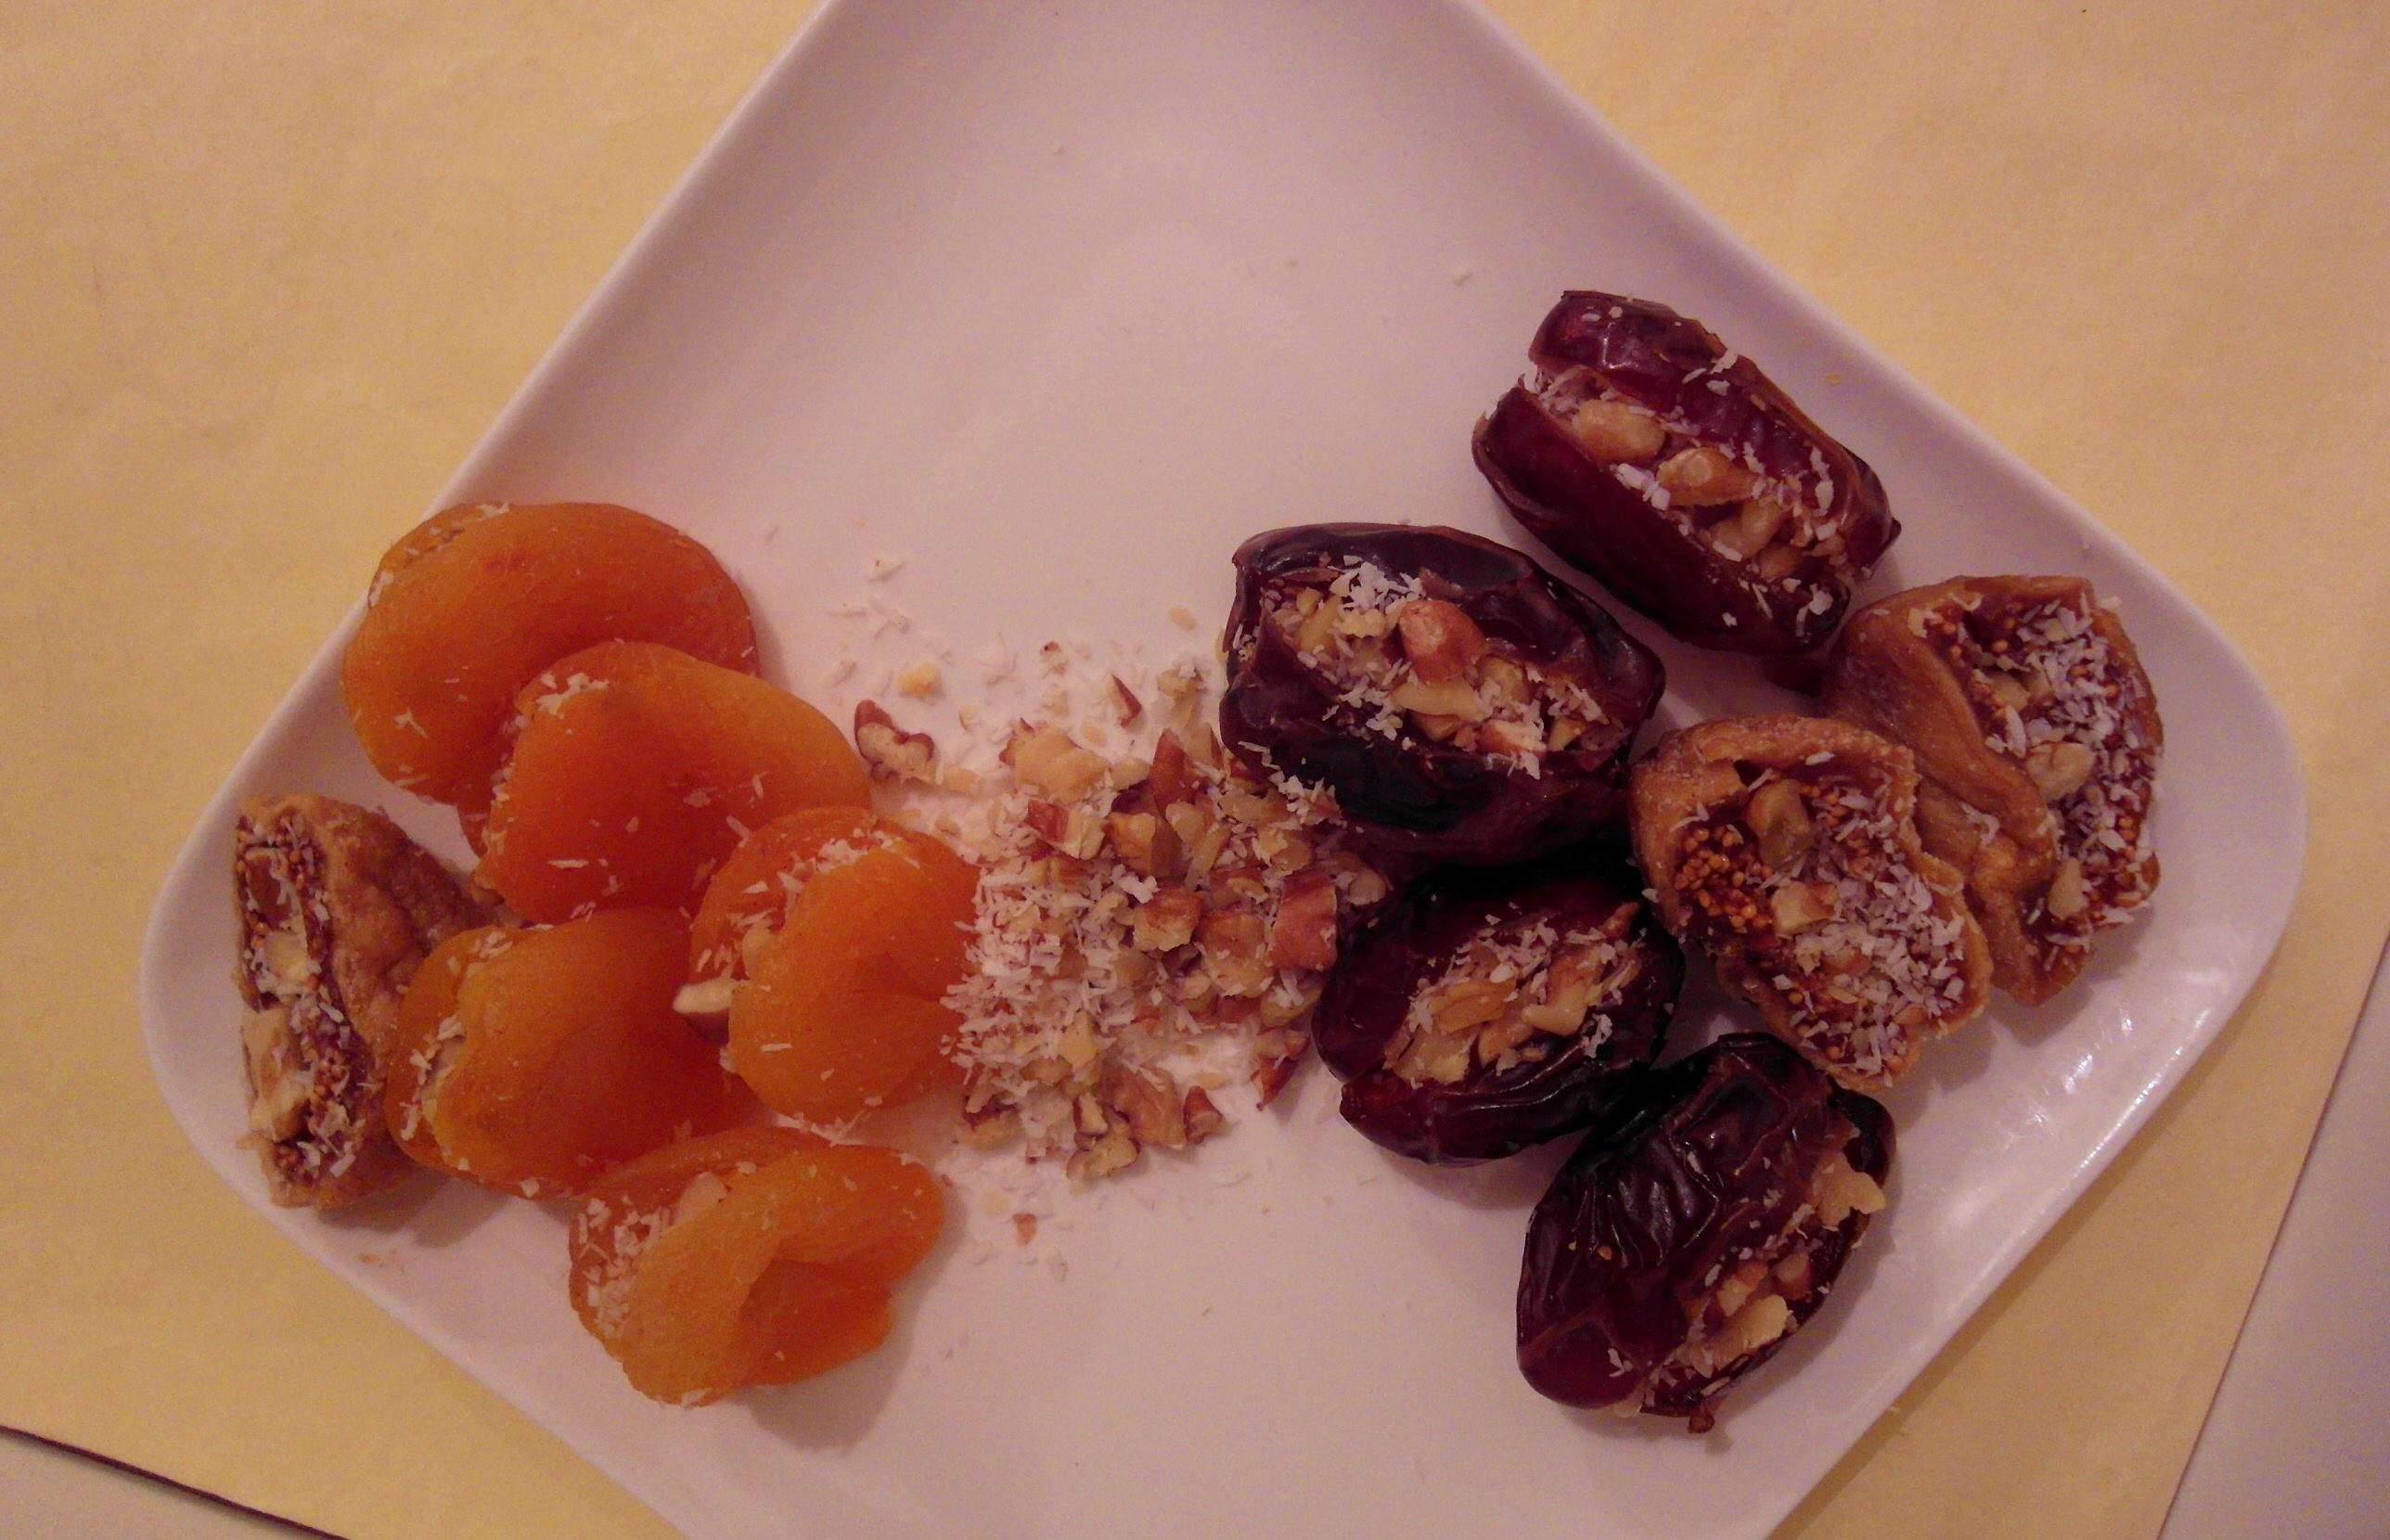 Vegan Sweet Stuffed Dried Fruit Mimouna food Vegan Recipes by Vegan Slaughterer Yaeli Shochat